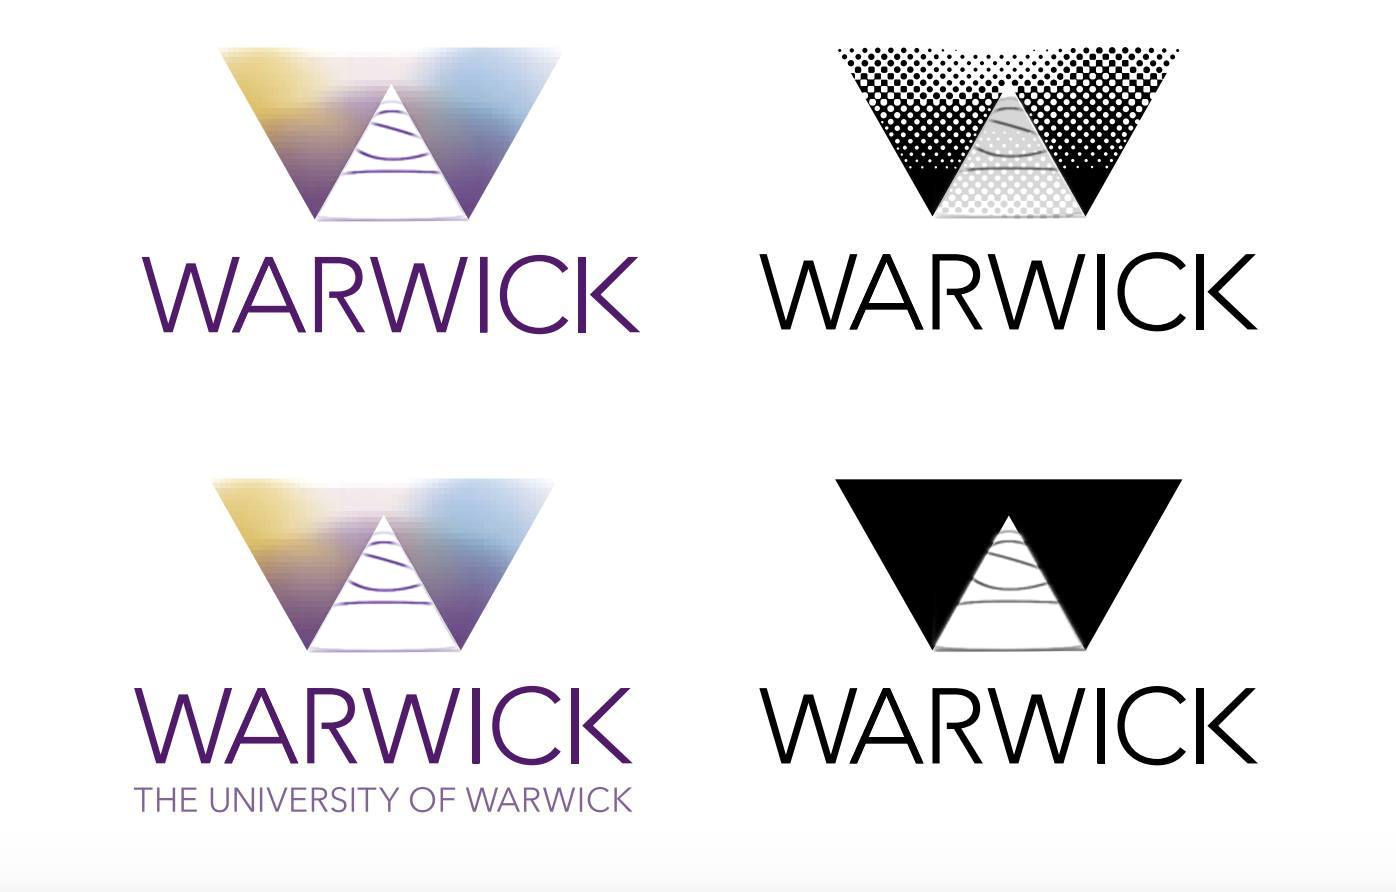 An alternative vision for WARWICK by creative genius Yung Lau